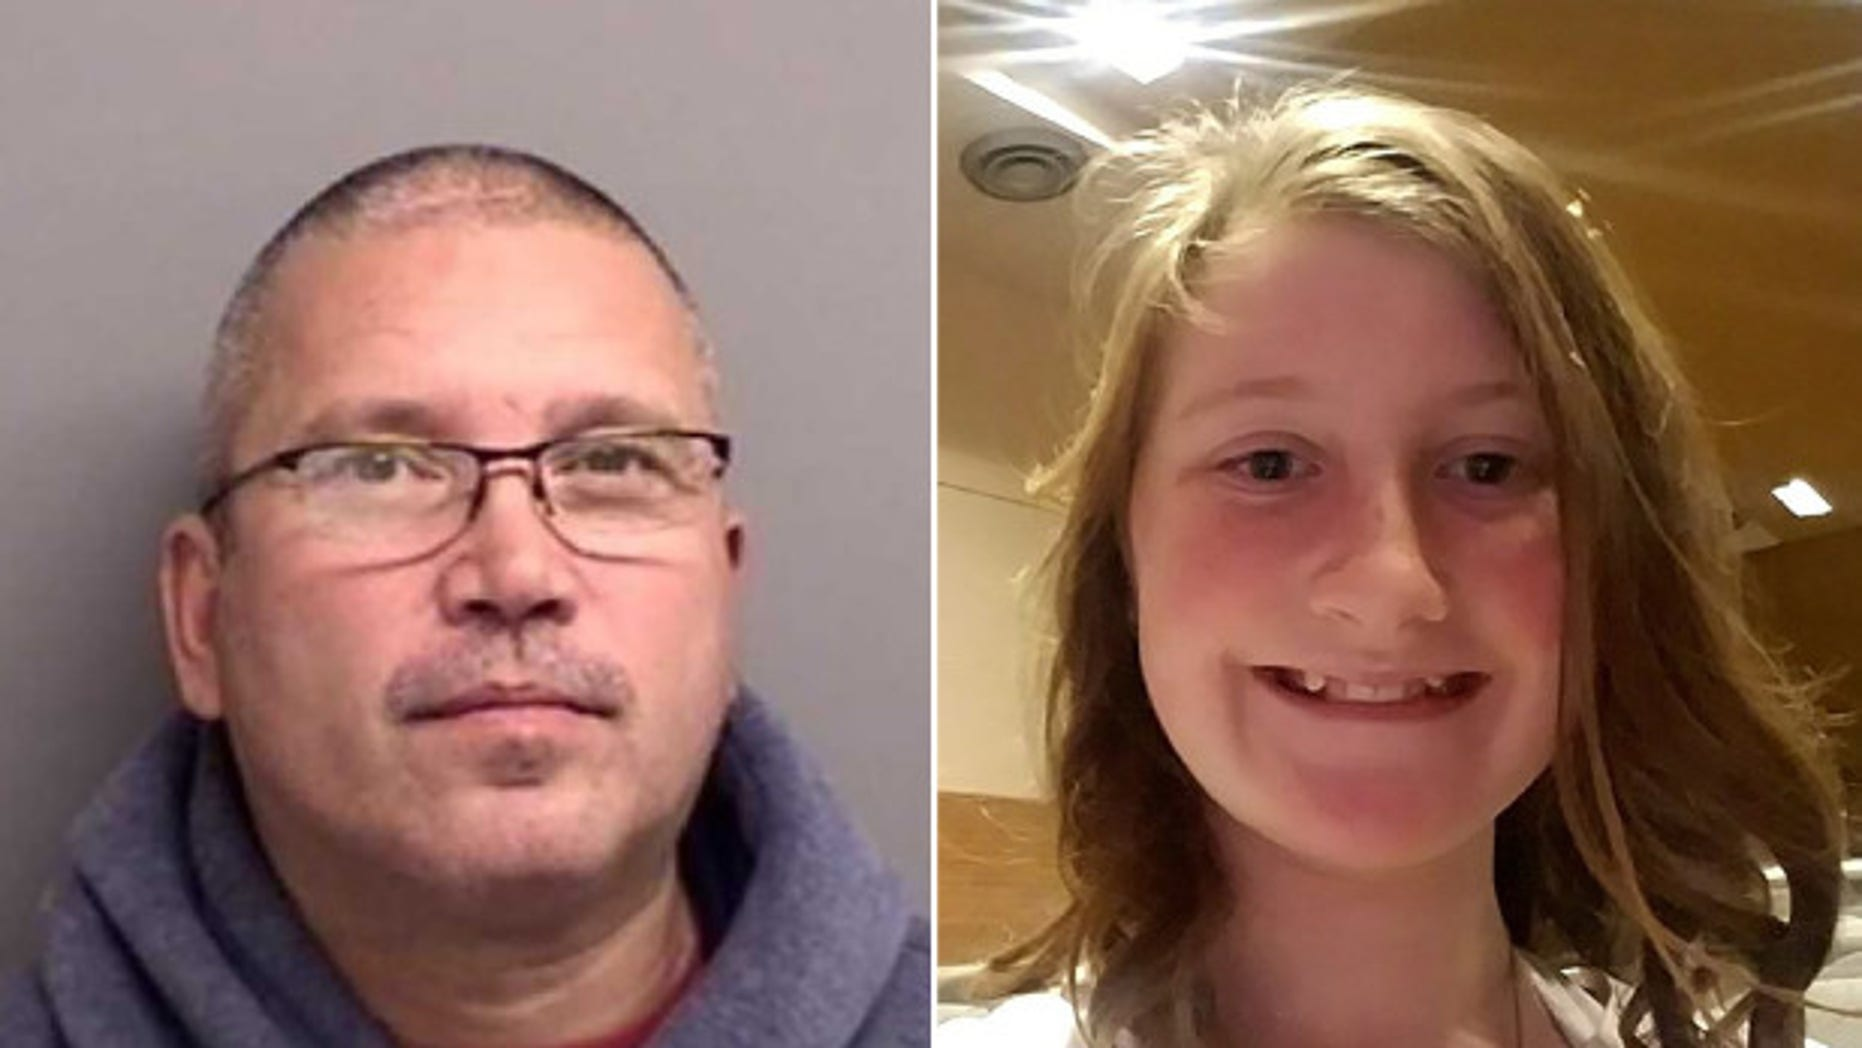 Raeanna Rosencrans, 12, was abducted on her her way home from school and may be with her stepfather, Jody Haskin, police in Colorado say.